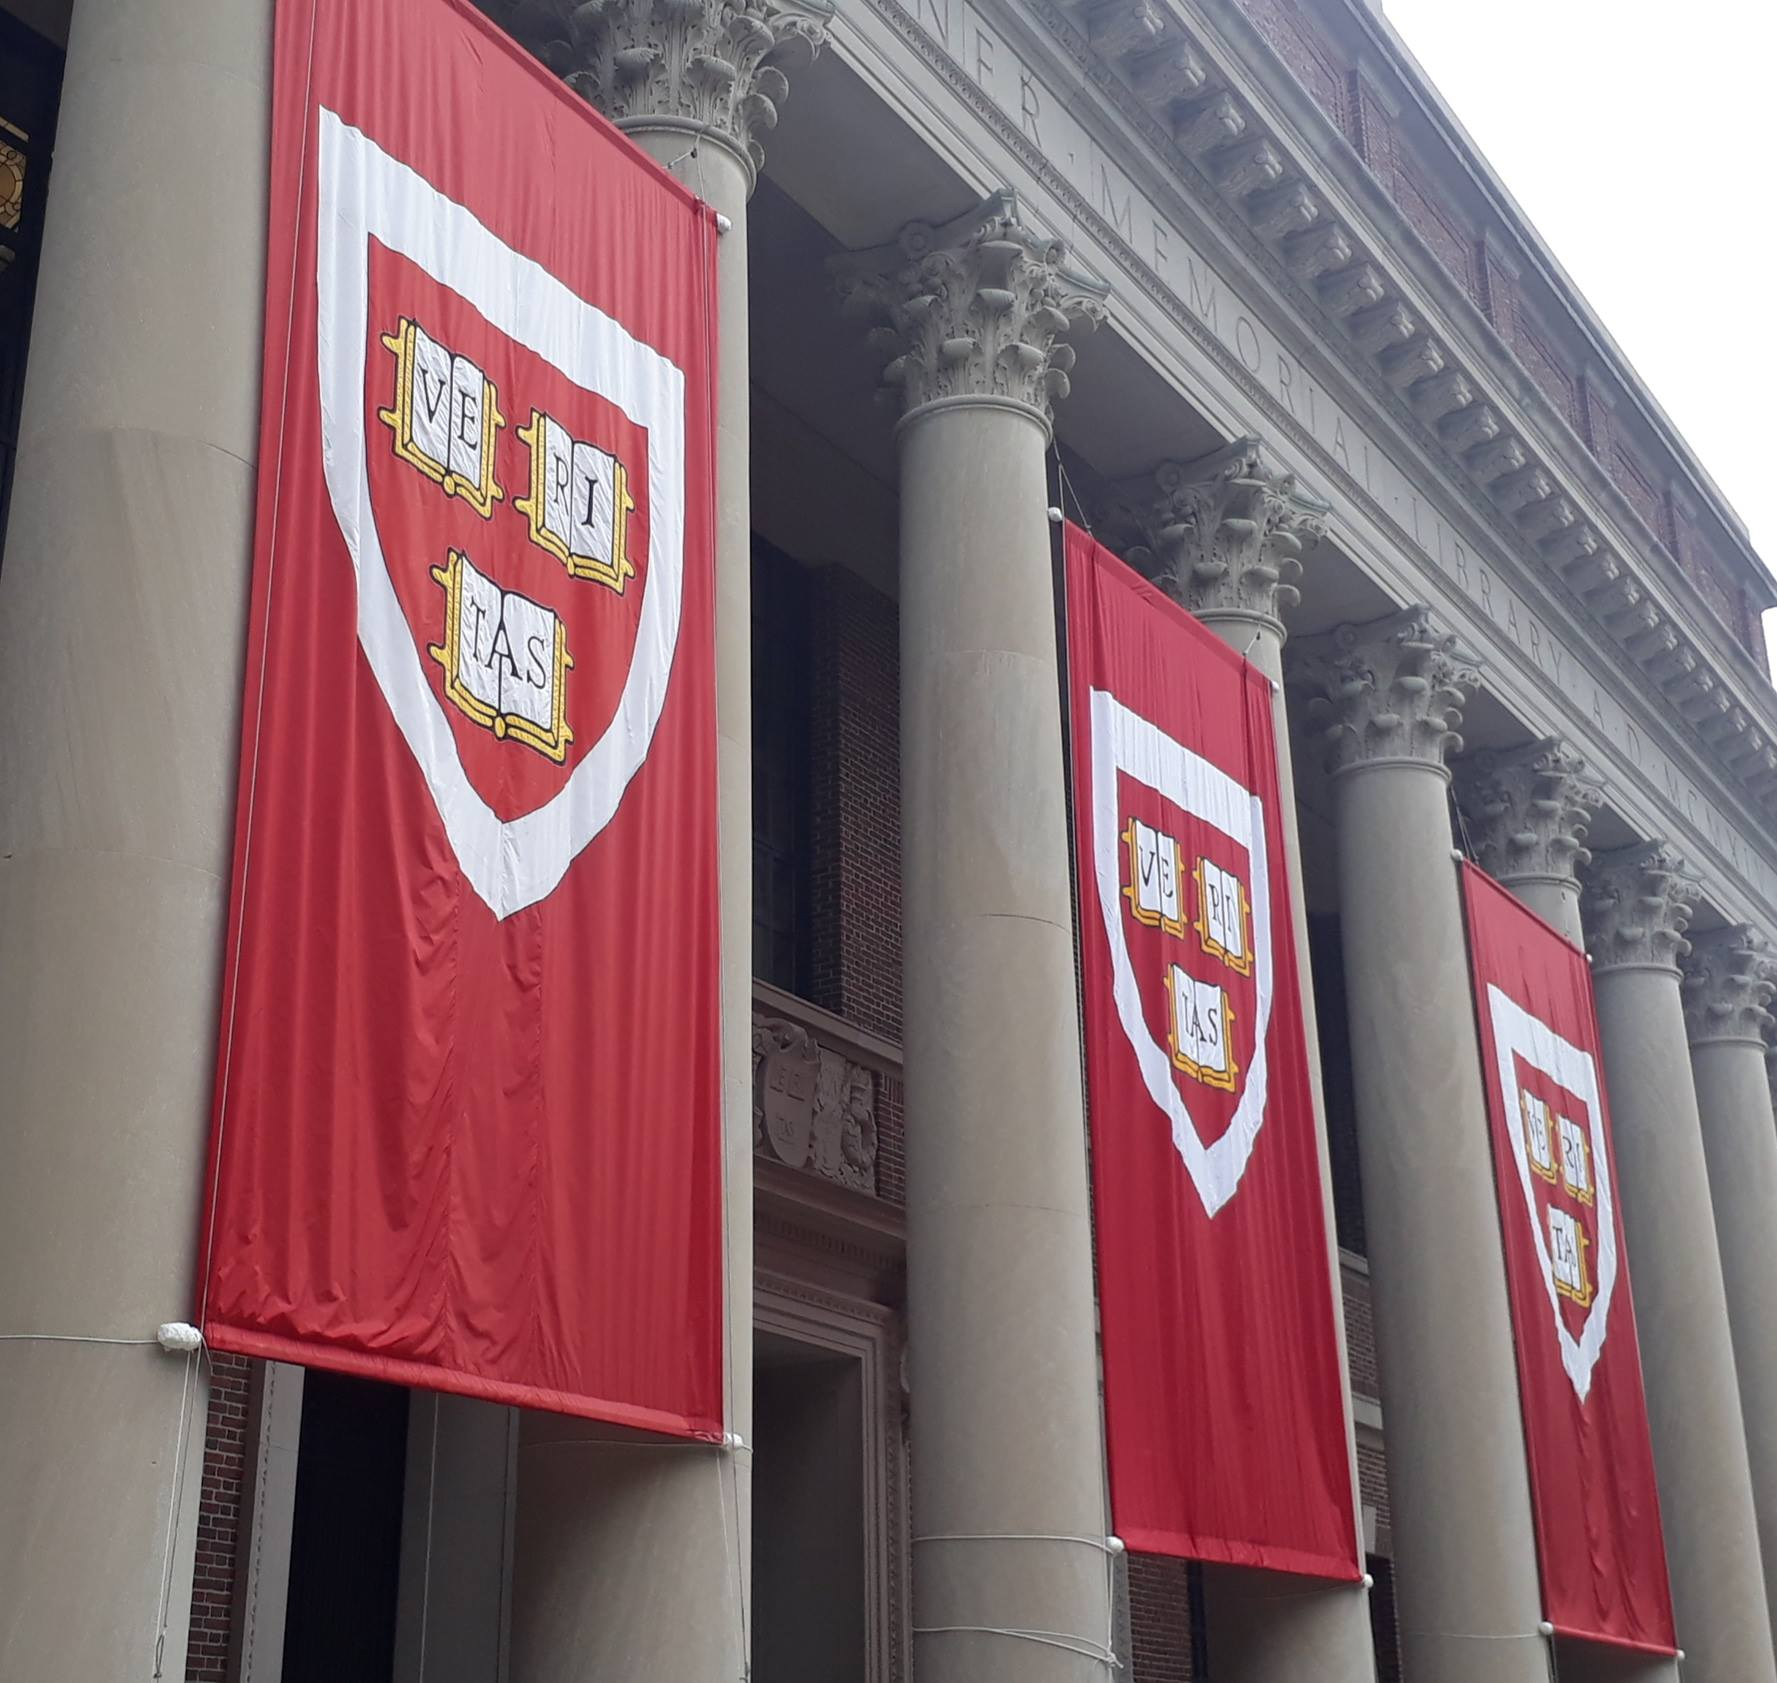 Veritas at Harvard